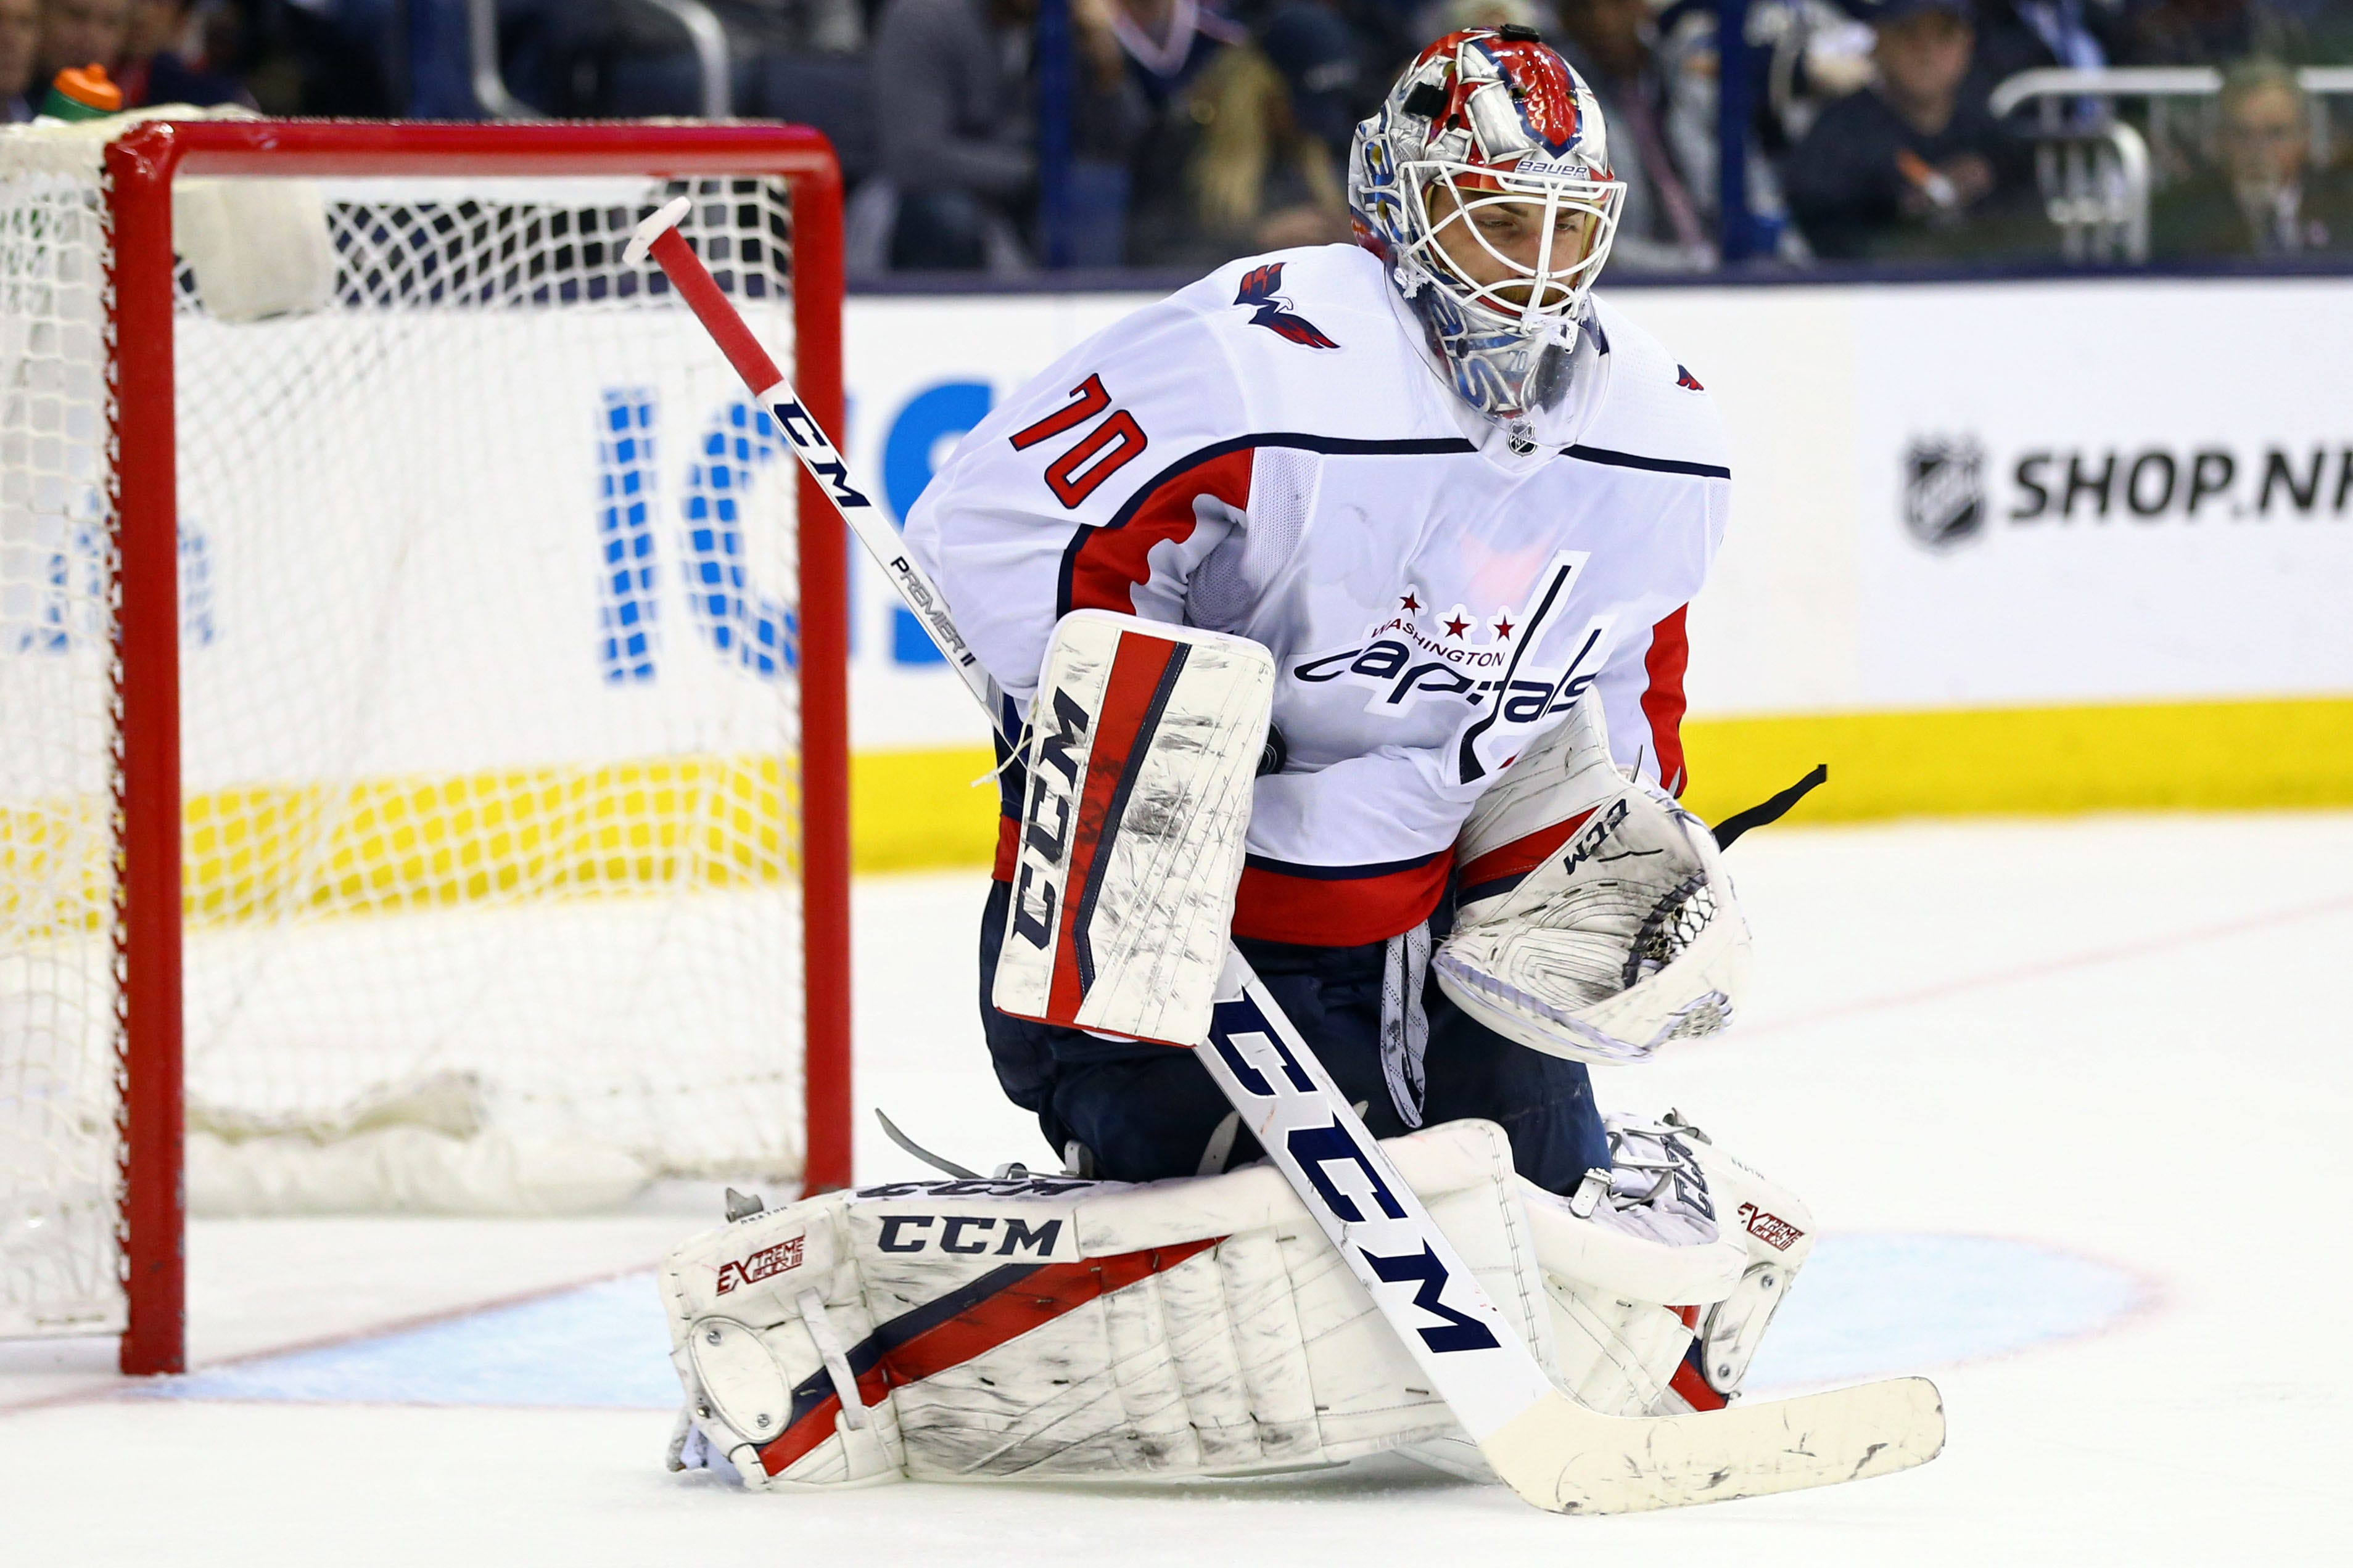 Braden Holtby's strong return from benching has helped Capitals even series